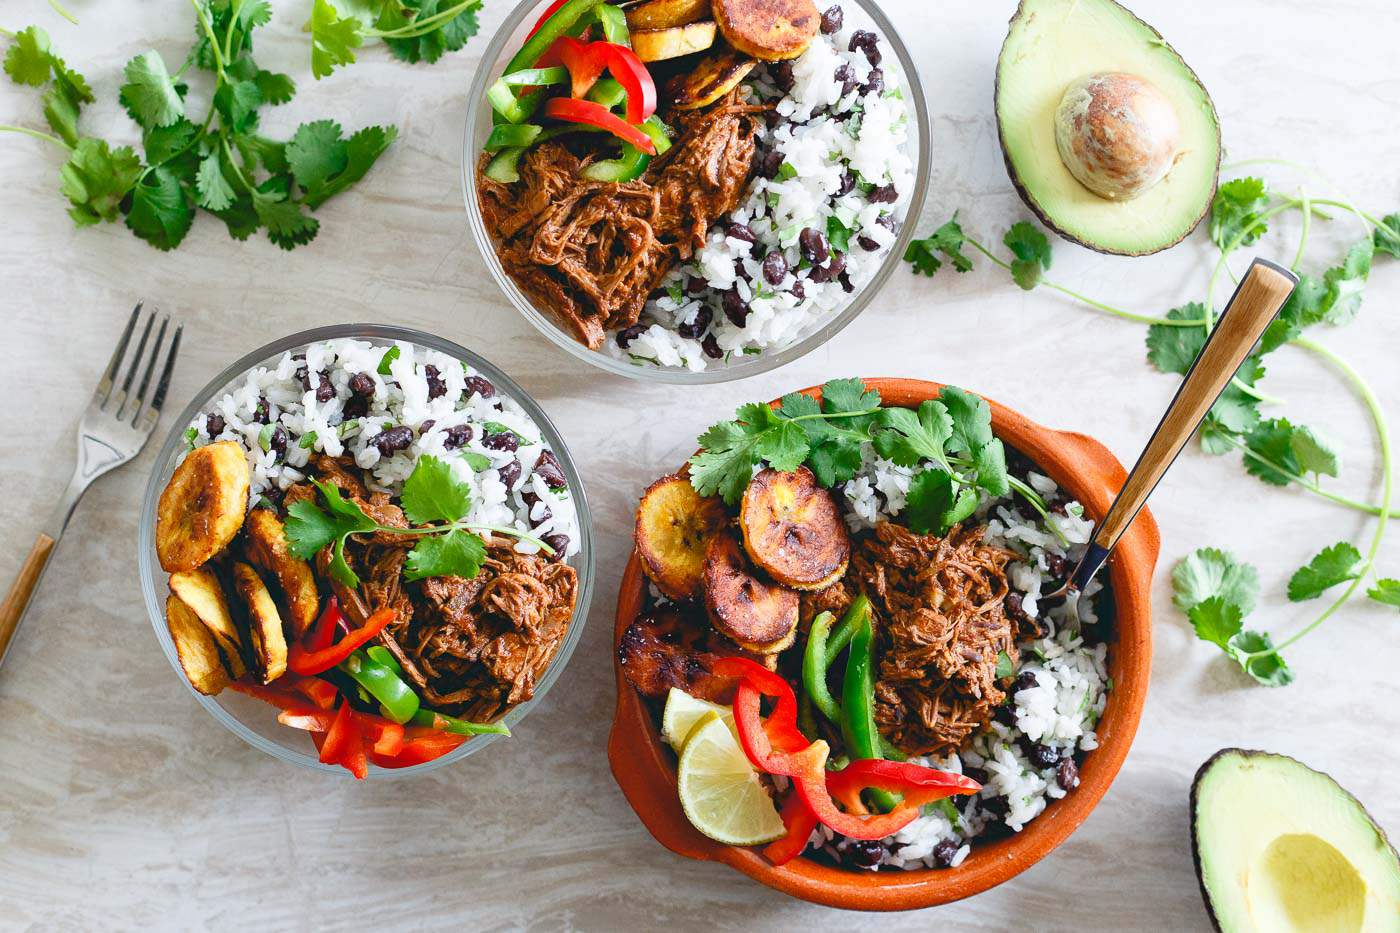 Pan-fried plantains, rice and beans and crispy peppers round out these slow cooker Mexican shredded beef bowls, the perfect meal prep idea for the week!